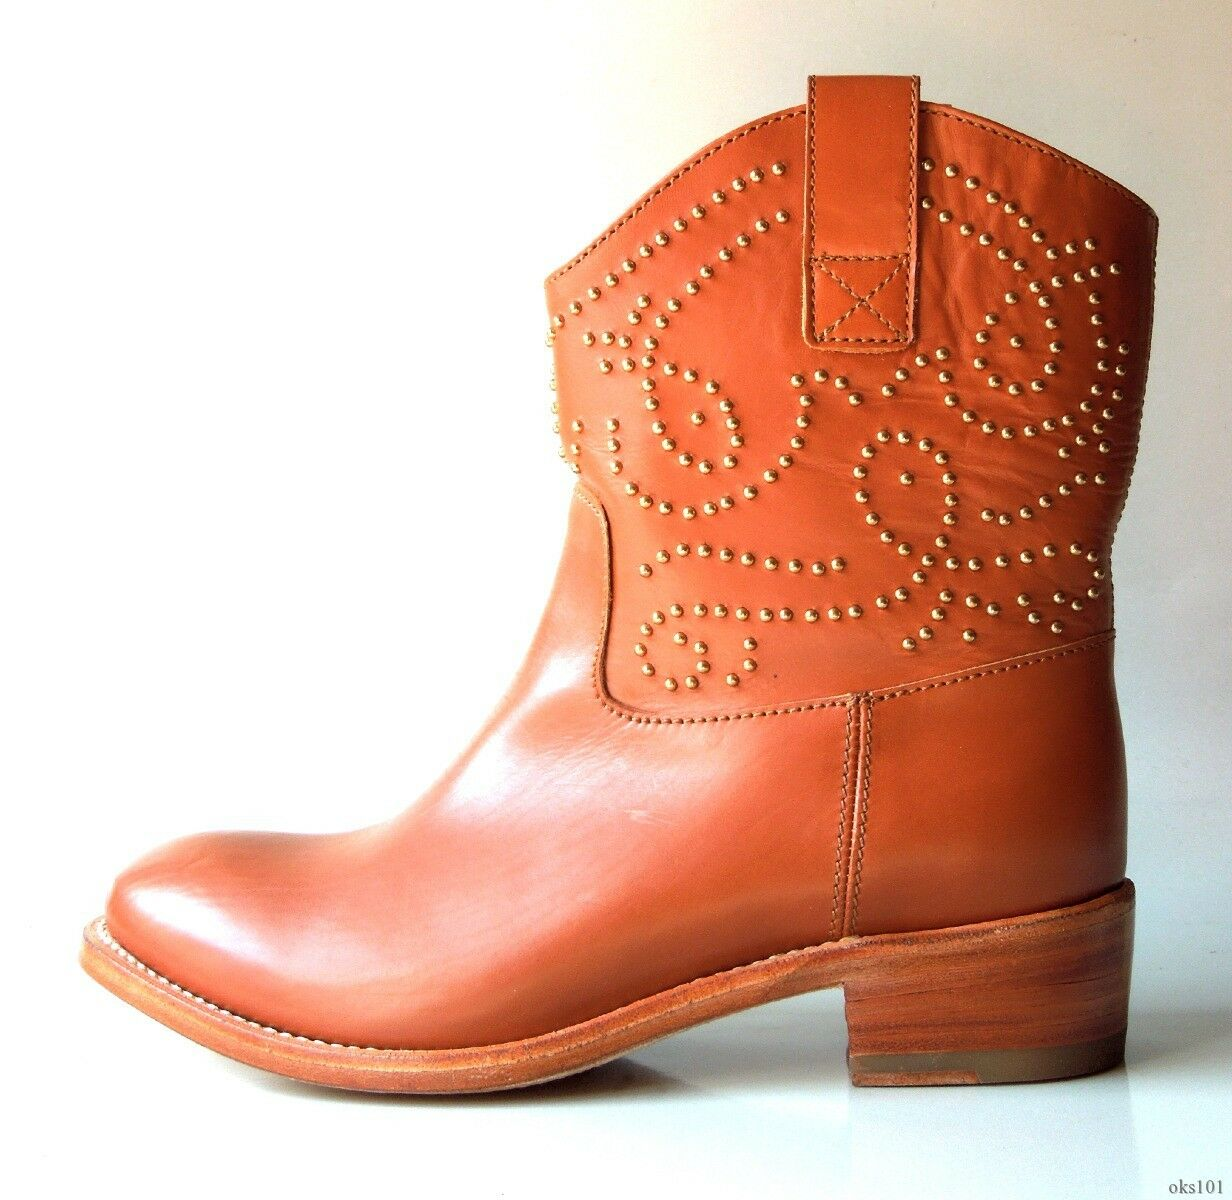 New  985 SERGIO ROSSI braun leather STUDDED cowboy ANKLE Stiefel 37 7 - gorgeous